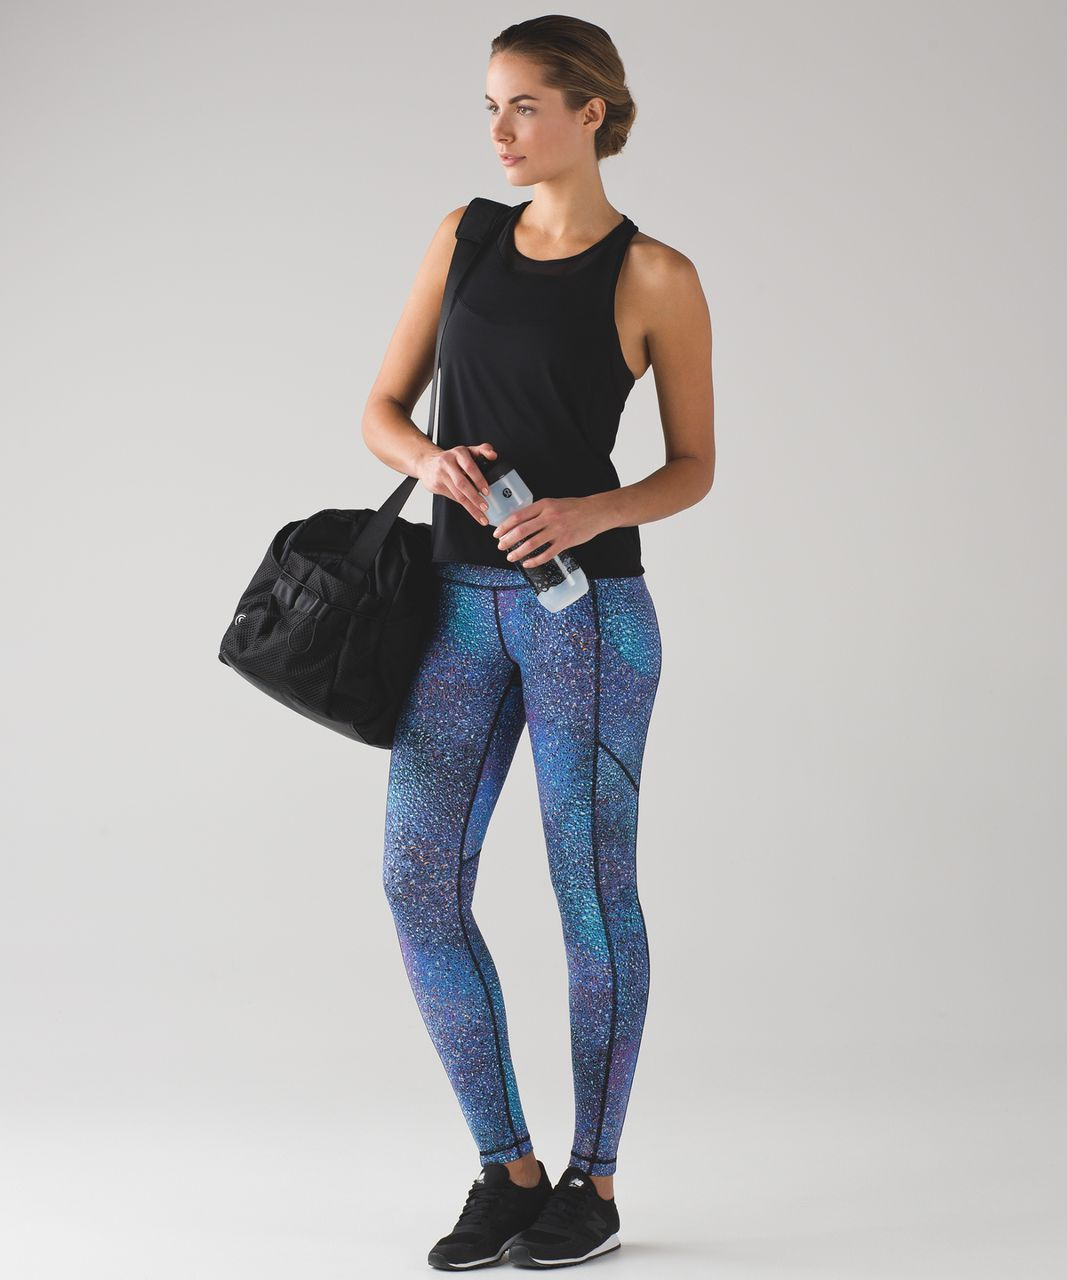 Lululemon Speed Tight V - Strive Multi Black